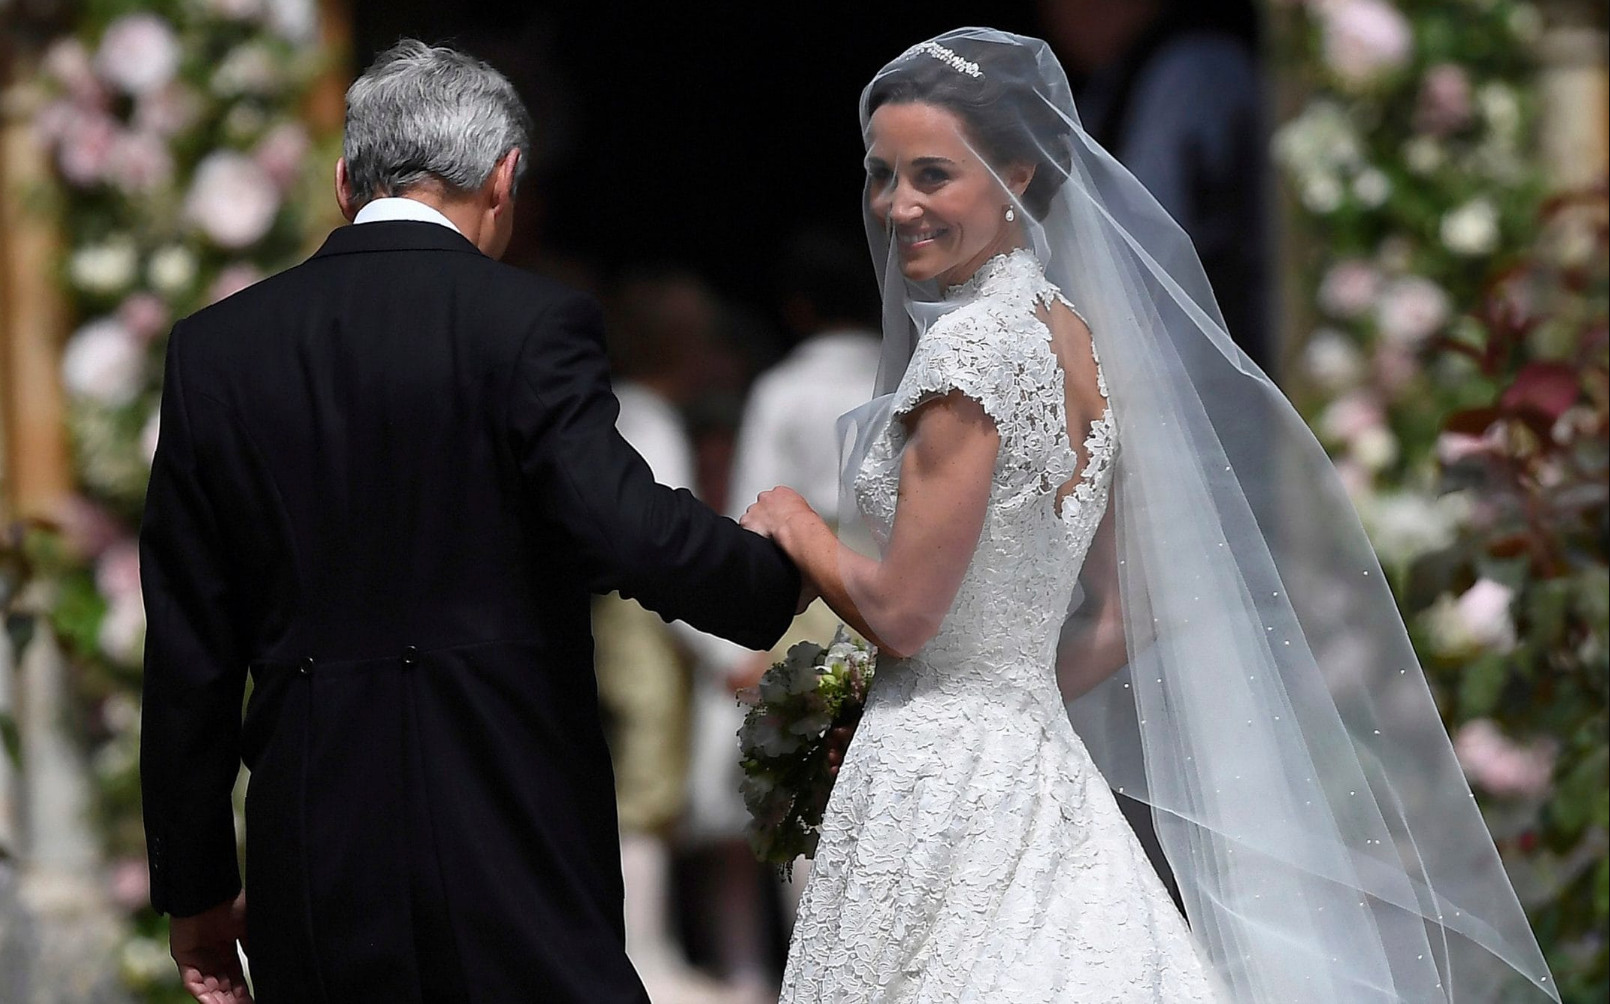 10 Adorable Moments From Pippa Middleton's Wedding